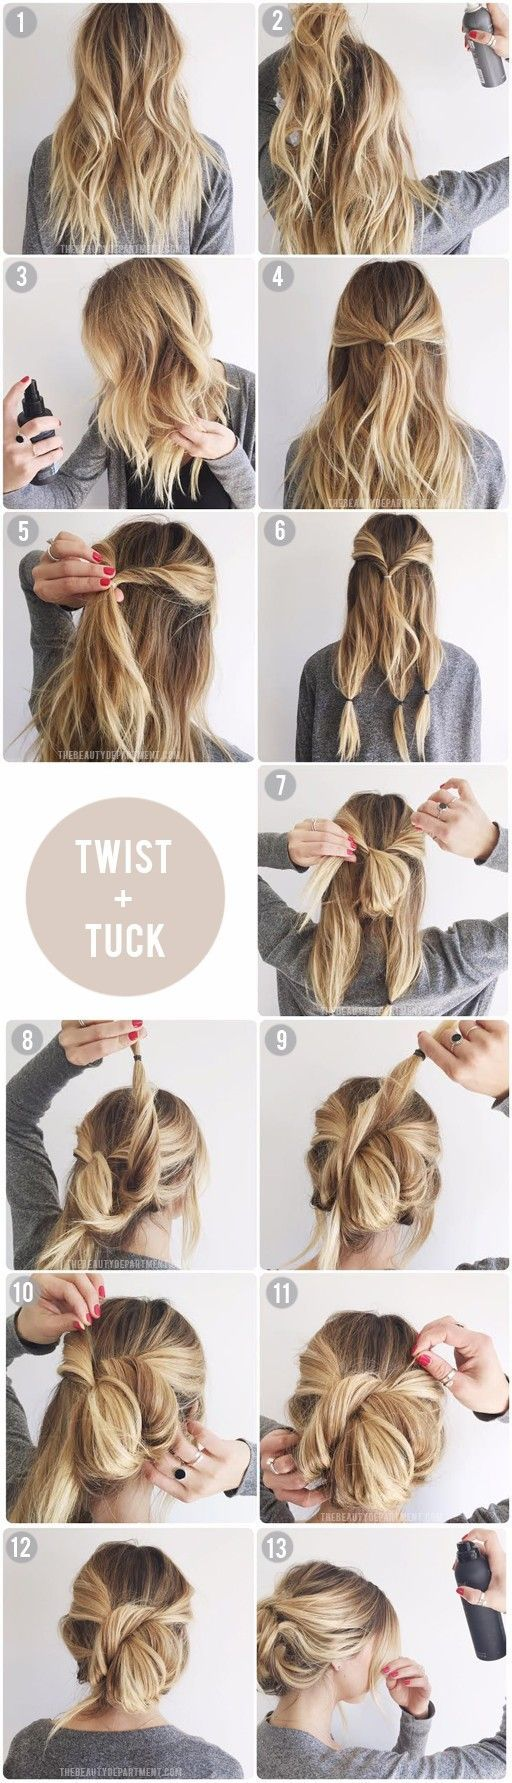 O updo mais fcil beleza do departamento de cabelereiro j an easy twist and tuck updo hair tutorial perfect for back to school both easy to do fast and looks effortless pmusecretfo Gallery